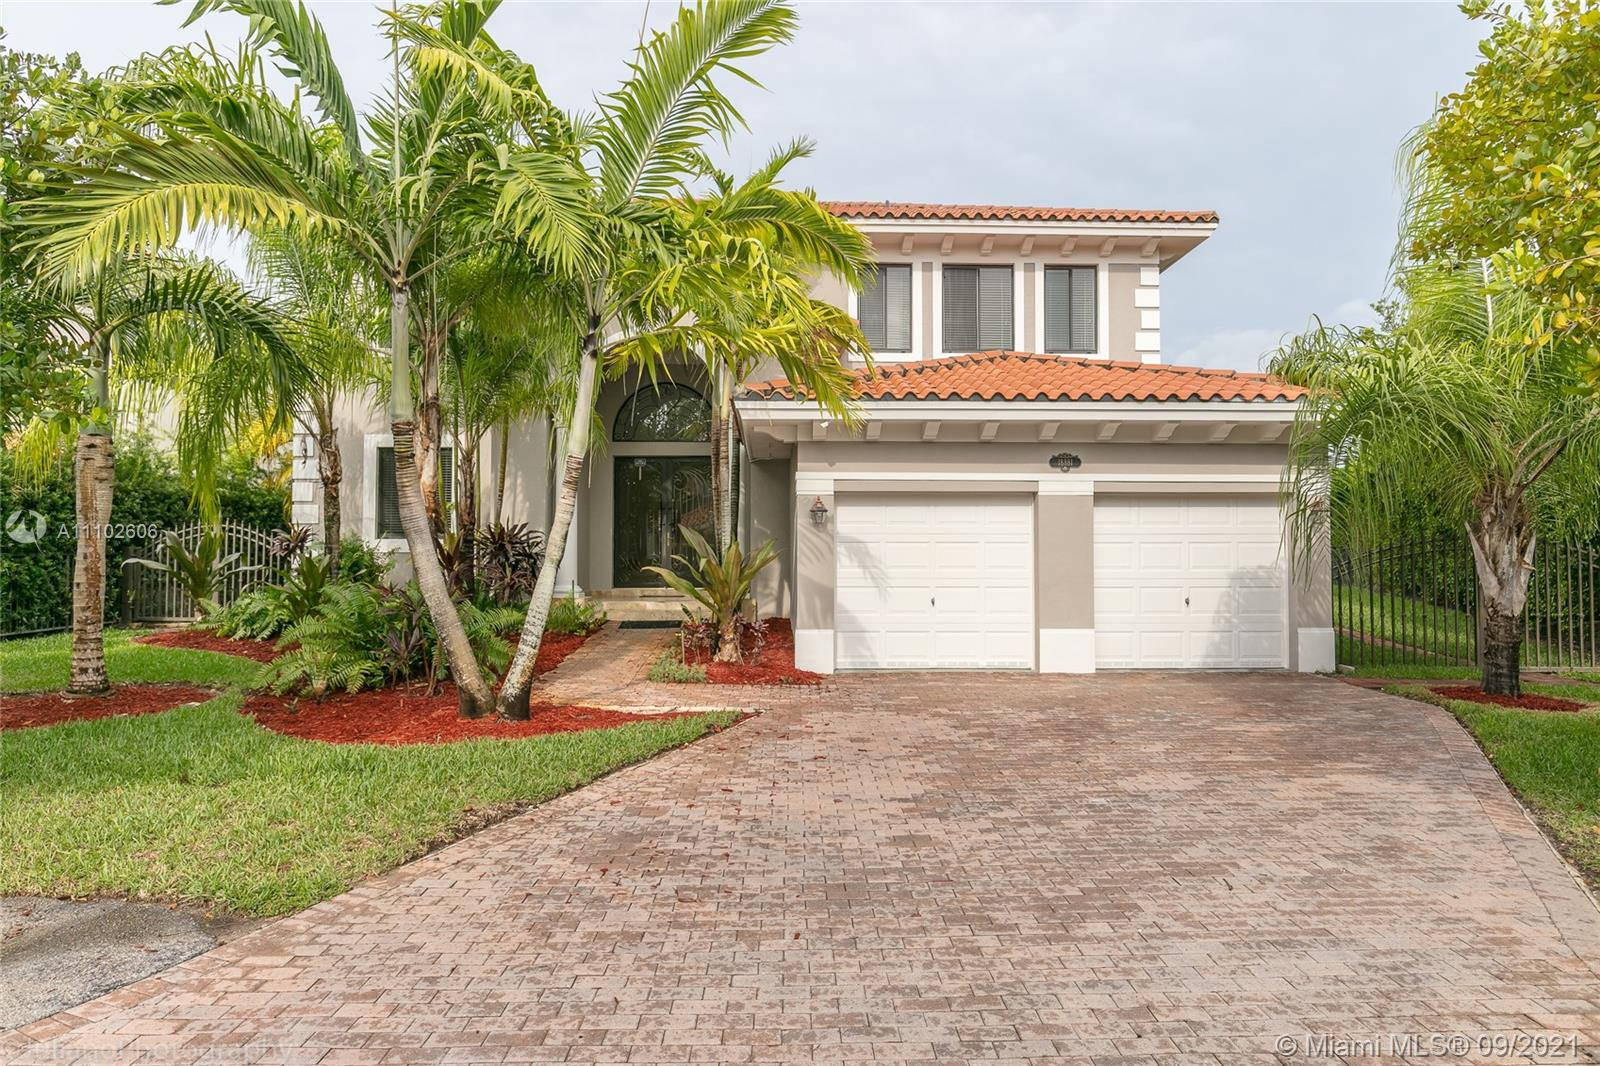 Single Family Home,For Rent,18881 SW 74th Ct, Cutler Bay, Florida 33157,Brickell,realty,broker,condos near me